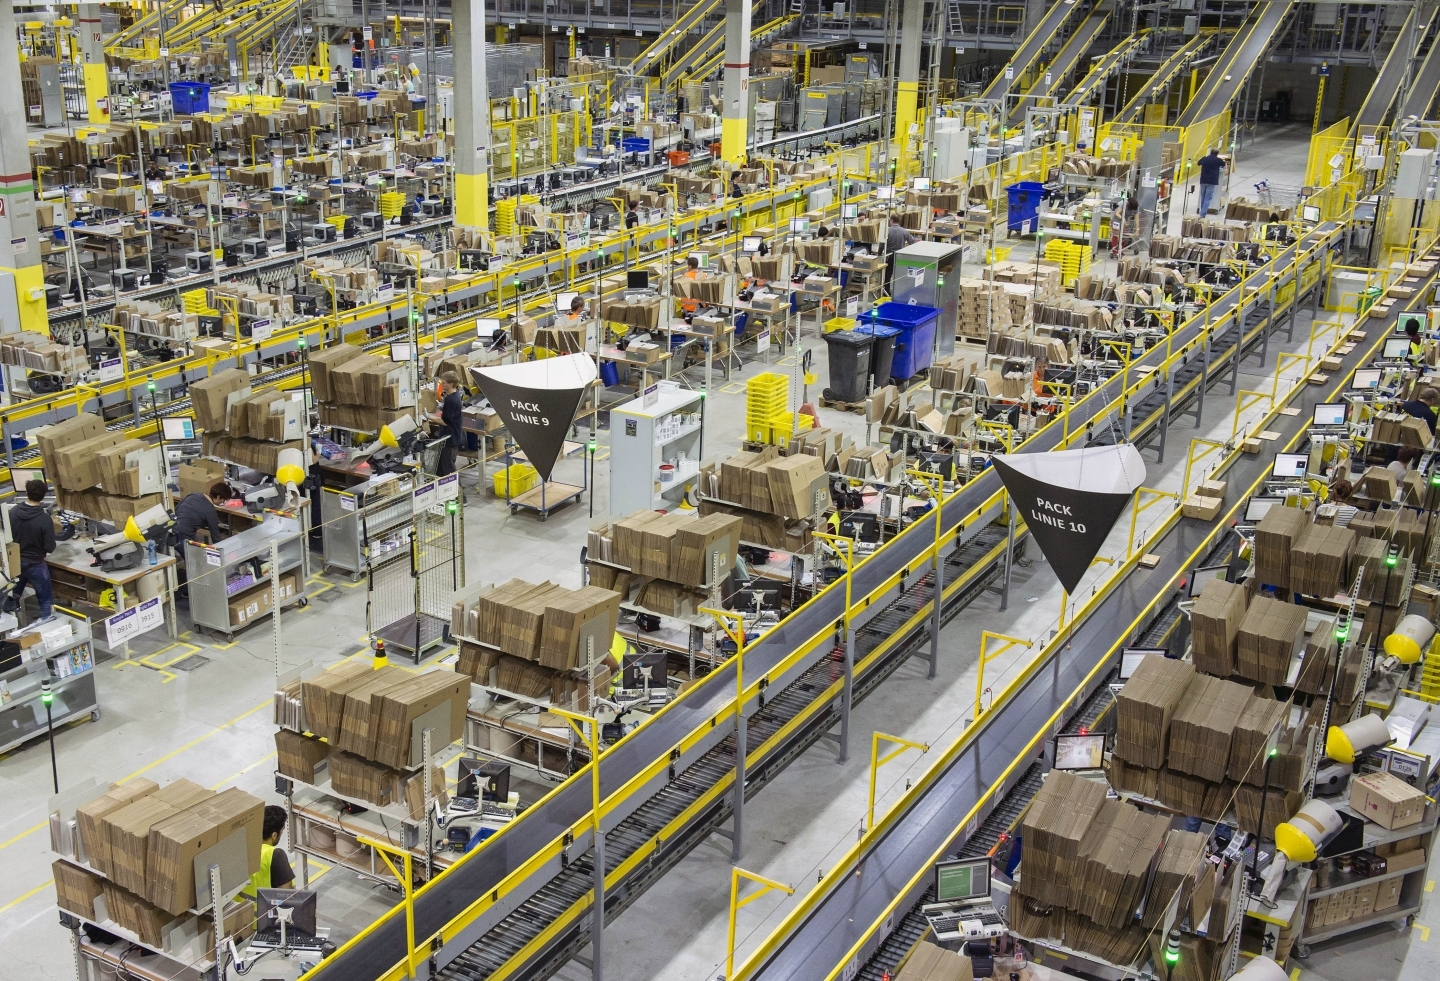 Artificial intelligence and people work side by side in an Amazon distribution centre. (AP Photo/Jens Meyer)